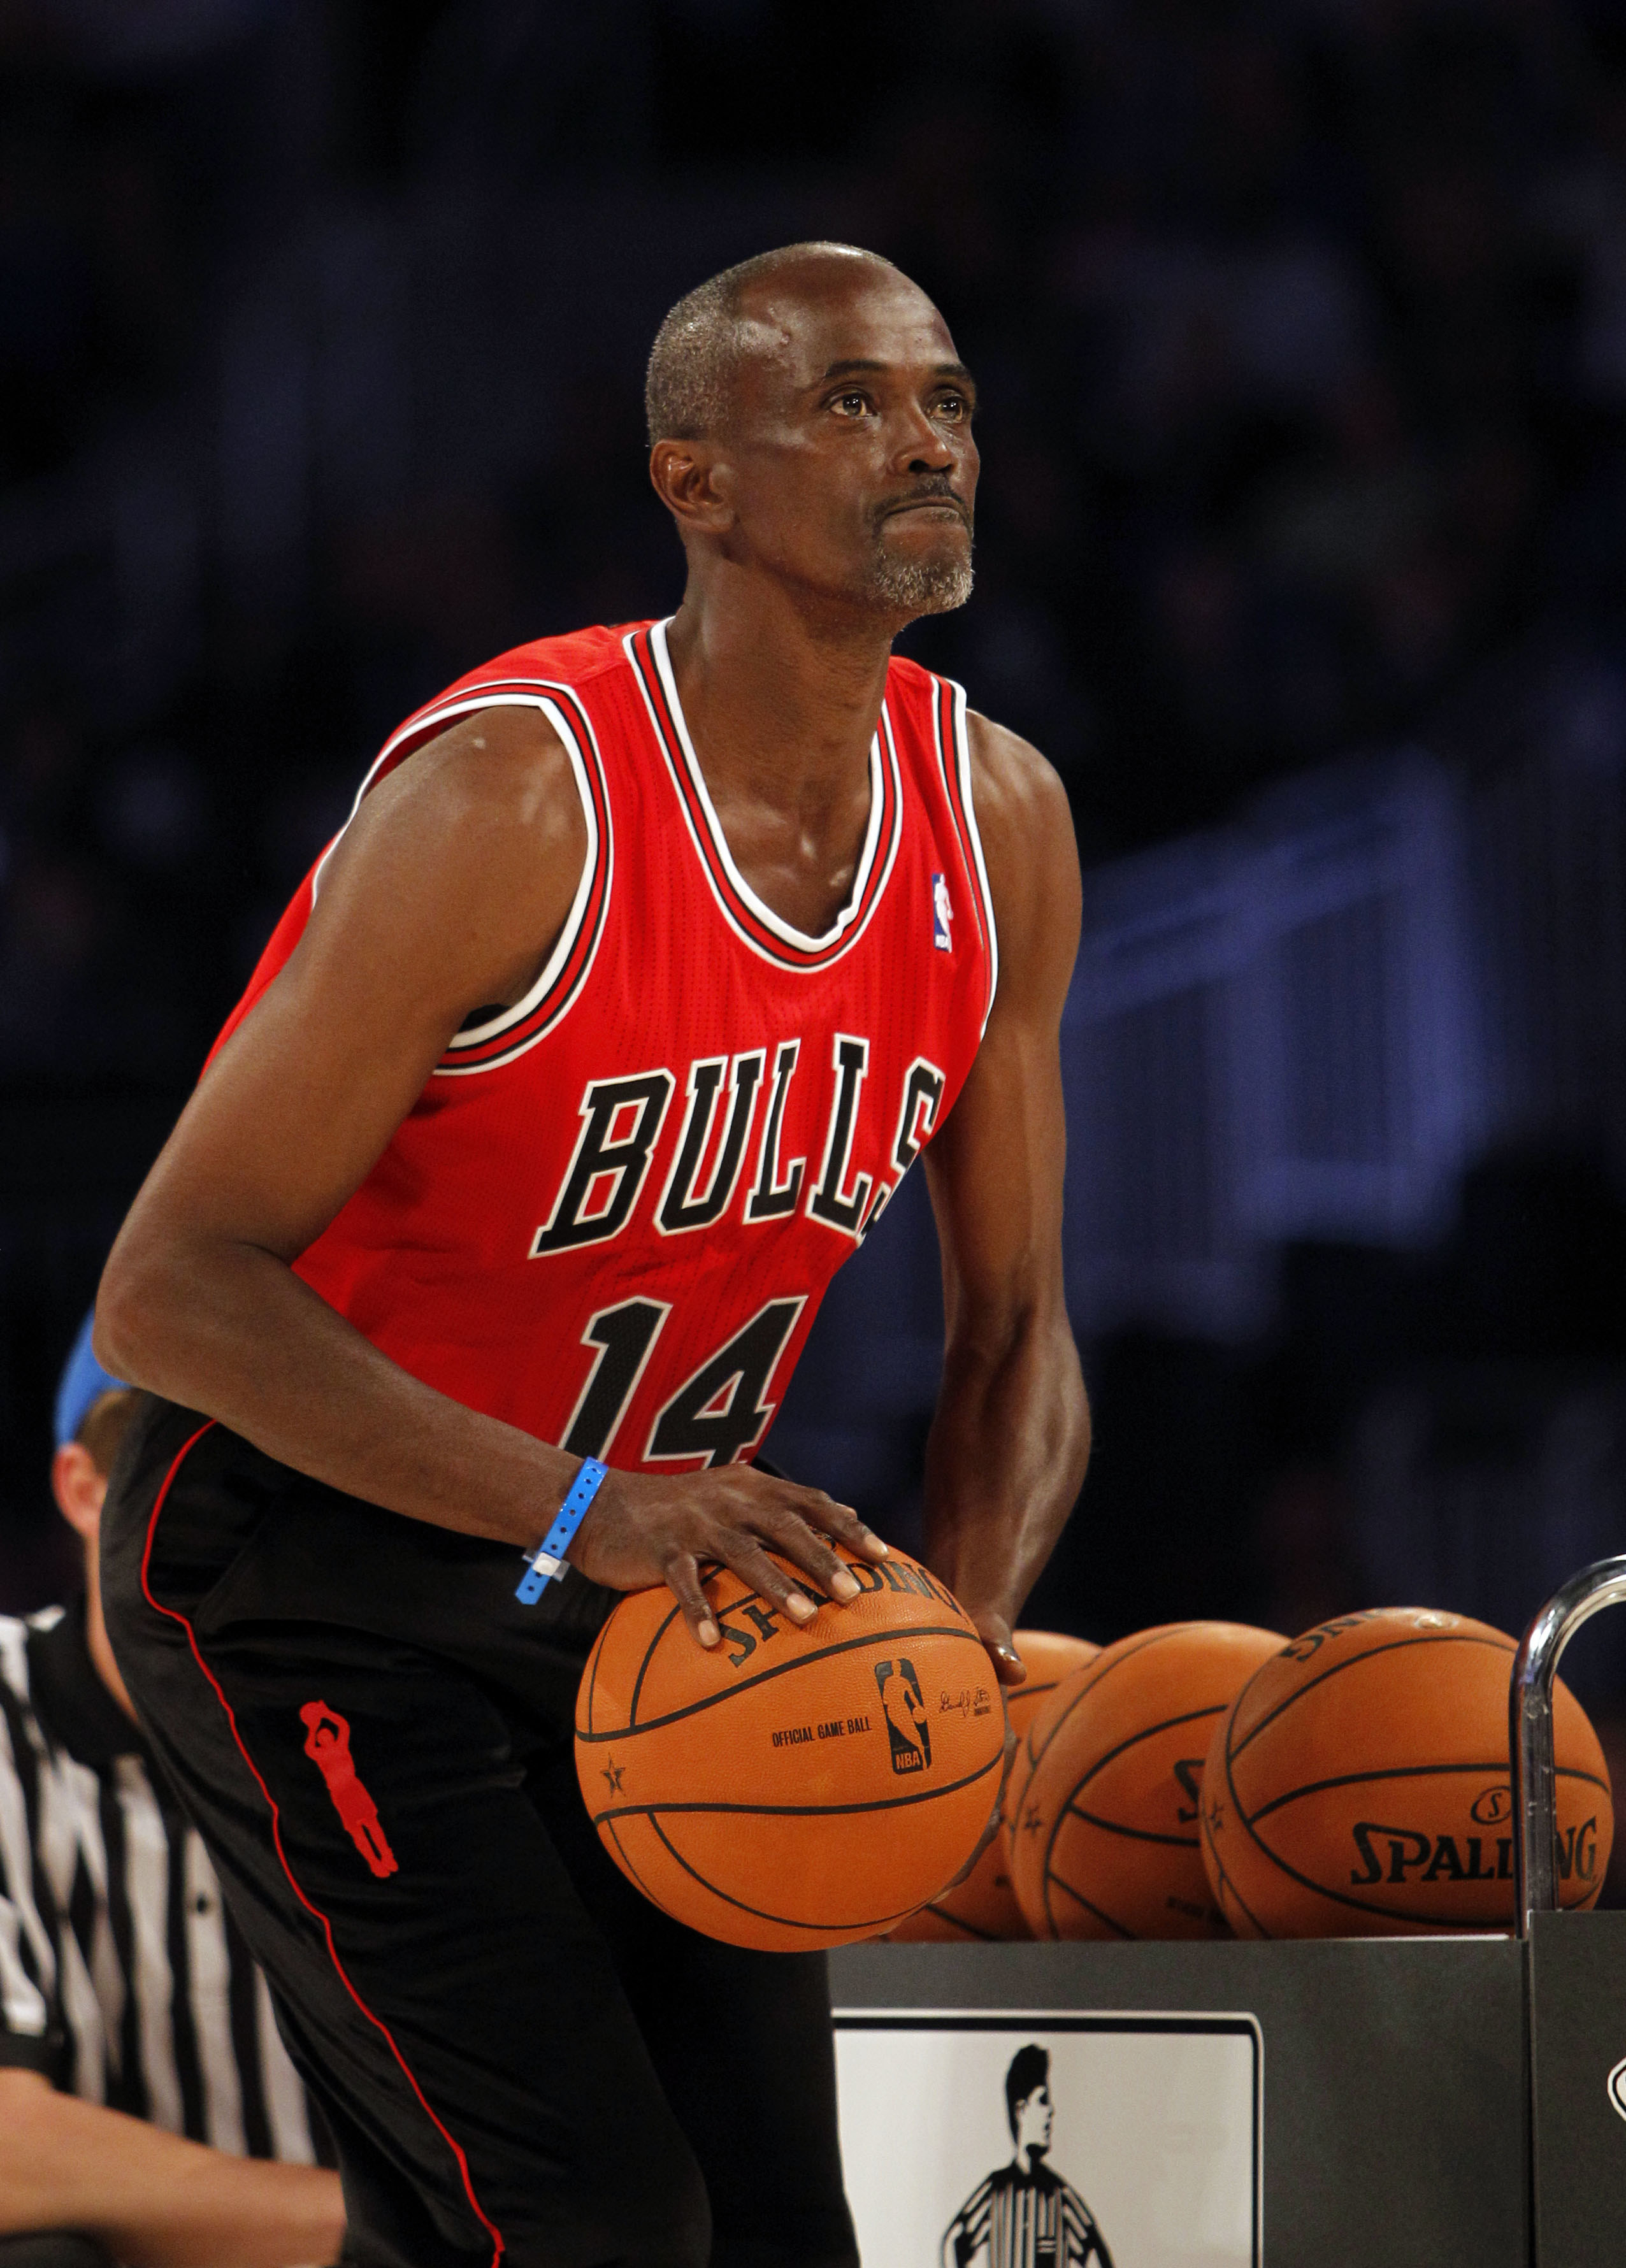 Craig Hodges playing at the NBA all stars game in 2012